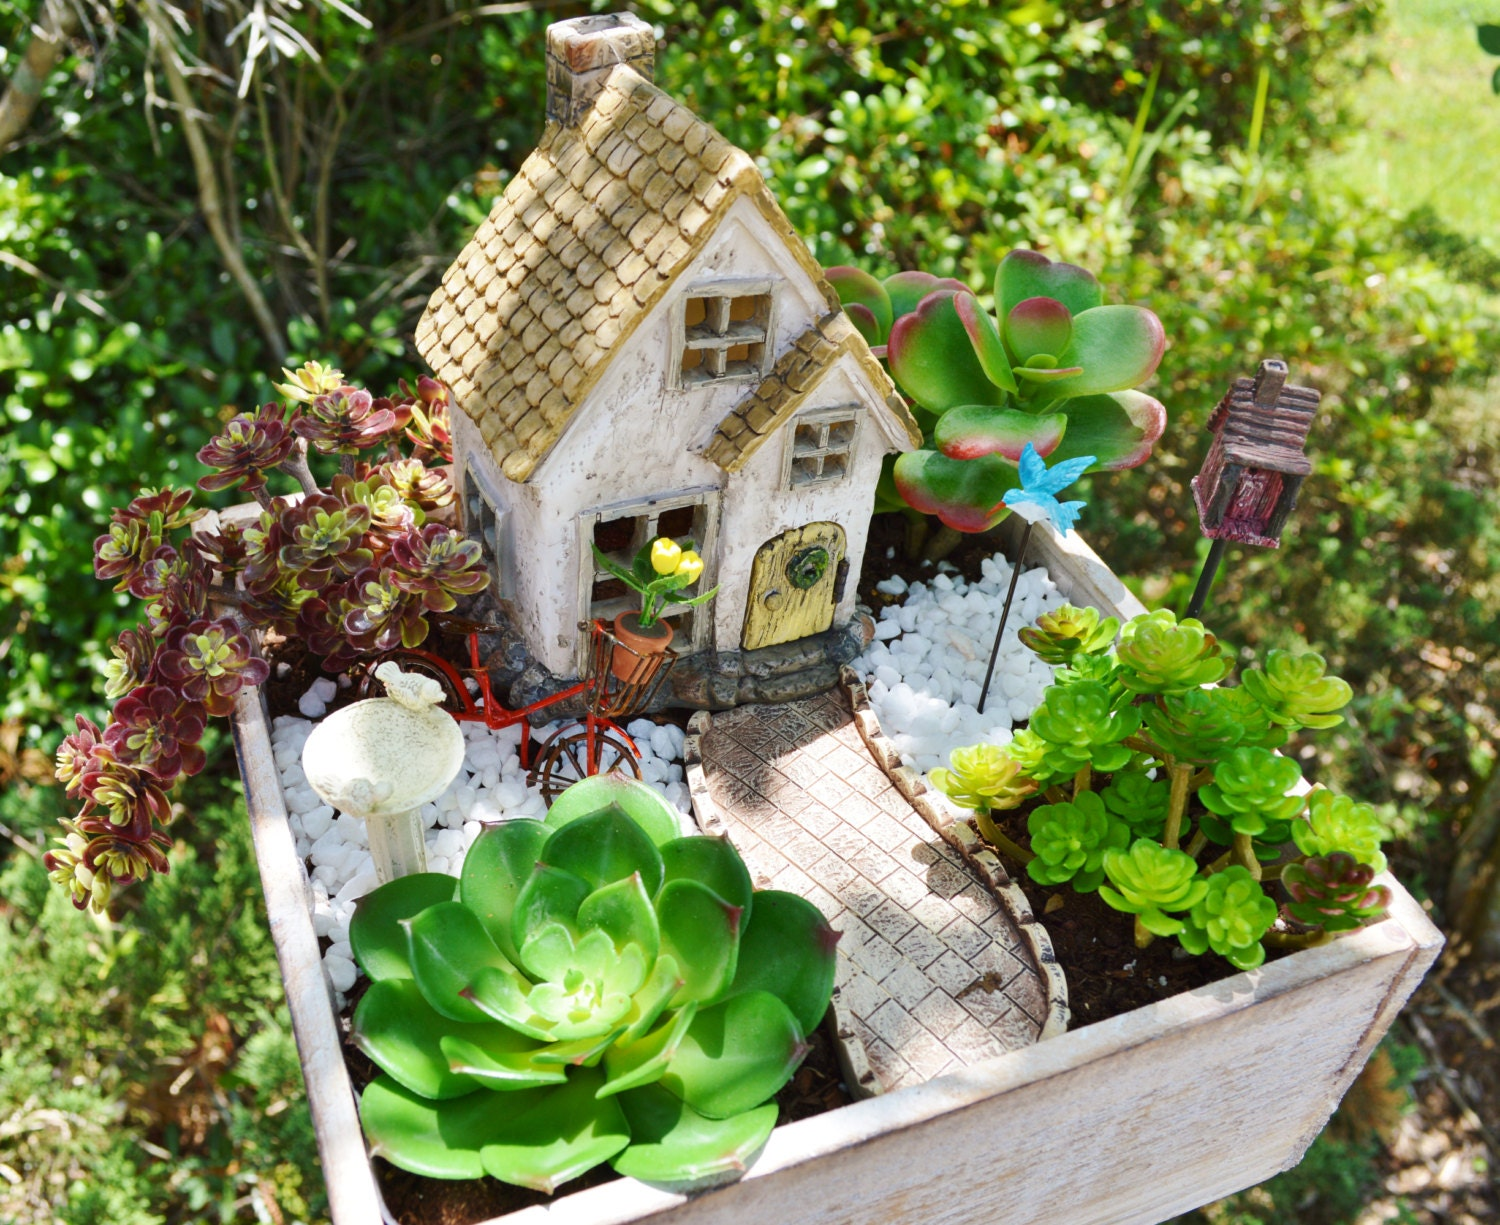 Fairy Garden Cottage Miniature House Kit Wooden Planter